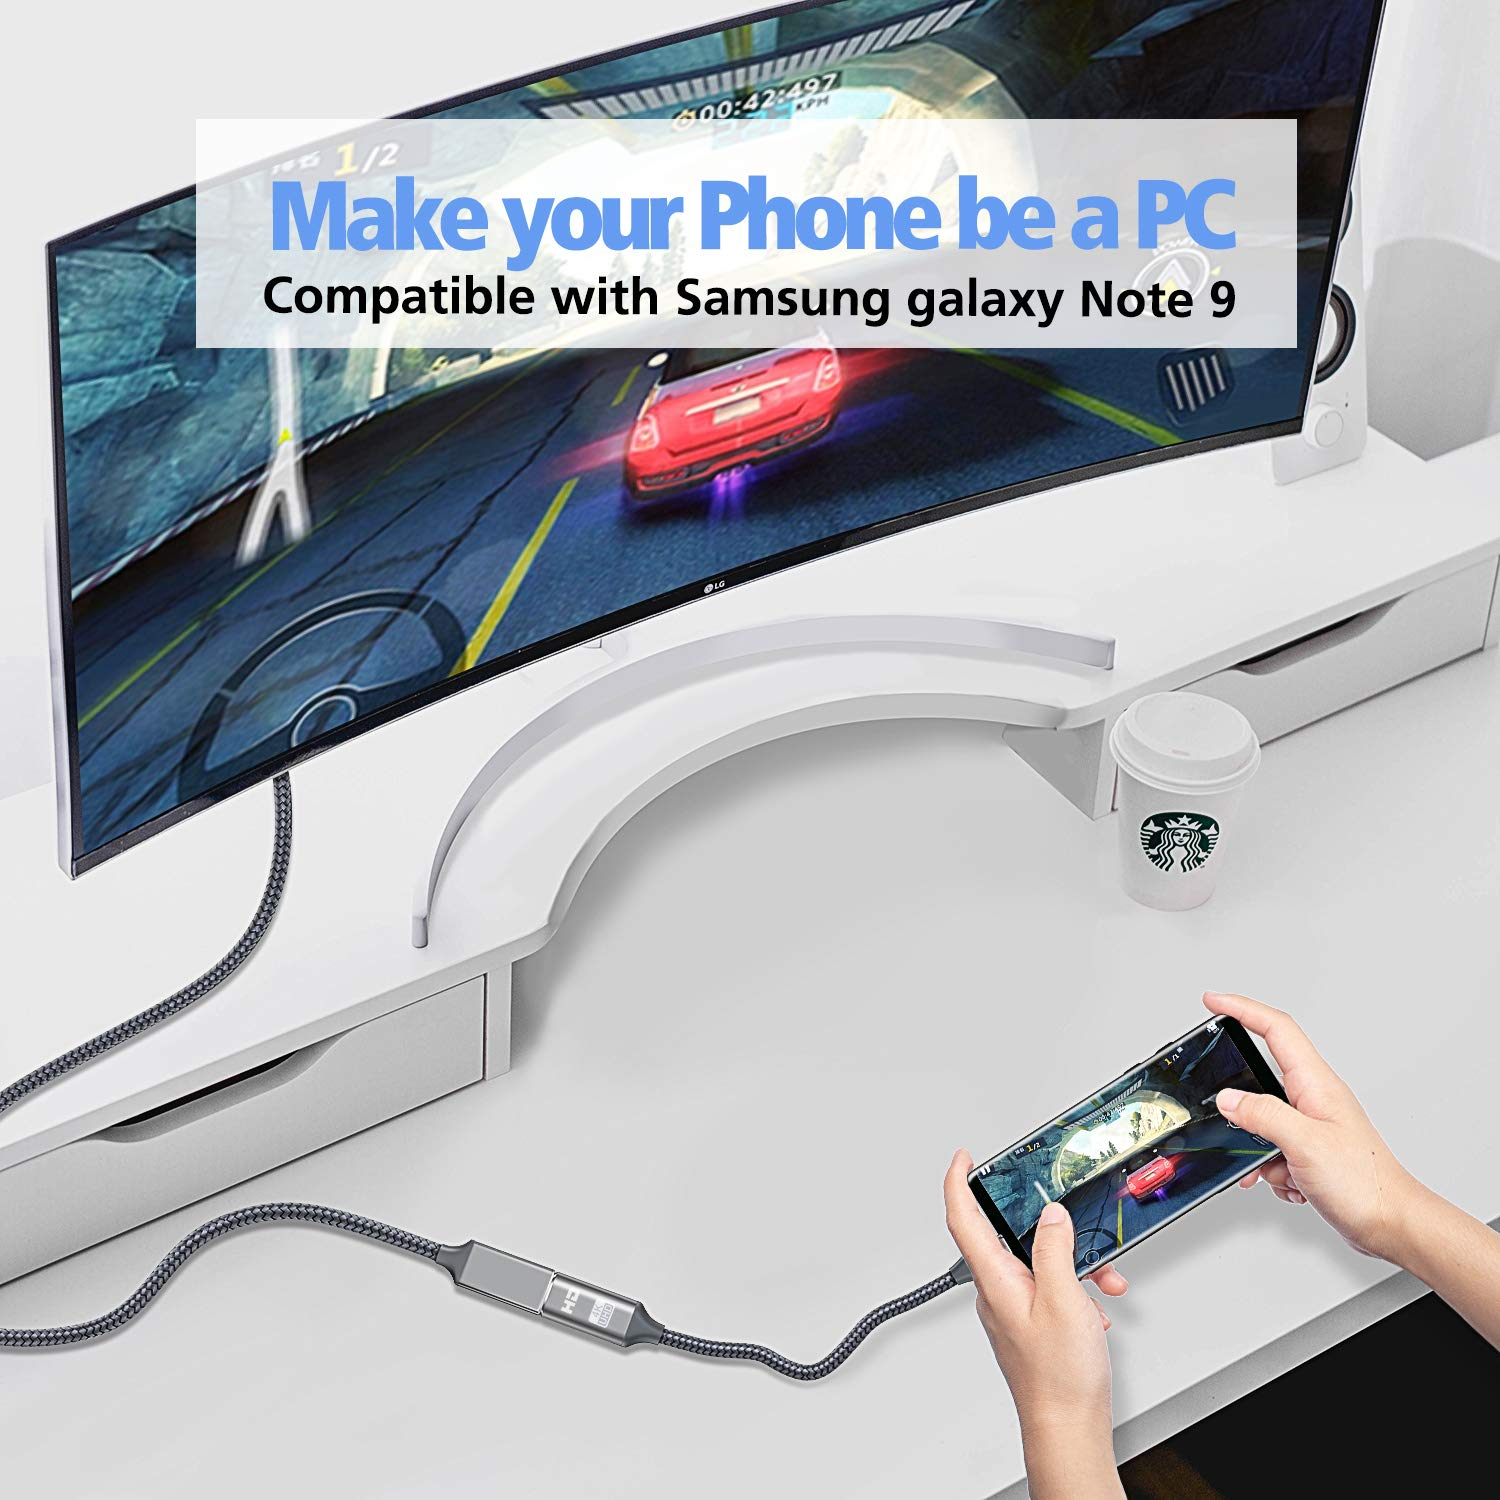 iMac Samsung Galaxy Note9//S9//S8 Gray USB C to HDMI Adapter Thunderbolt 3 Compatible MacBook Pro Dreamsea USB Type-C to HDMI Adapter Surface Book 2 Dell XPS 13//15 Chromebook Pixel 4K@60Hz